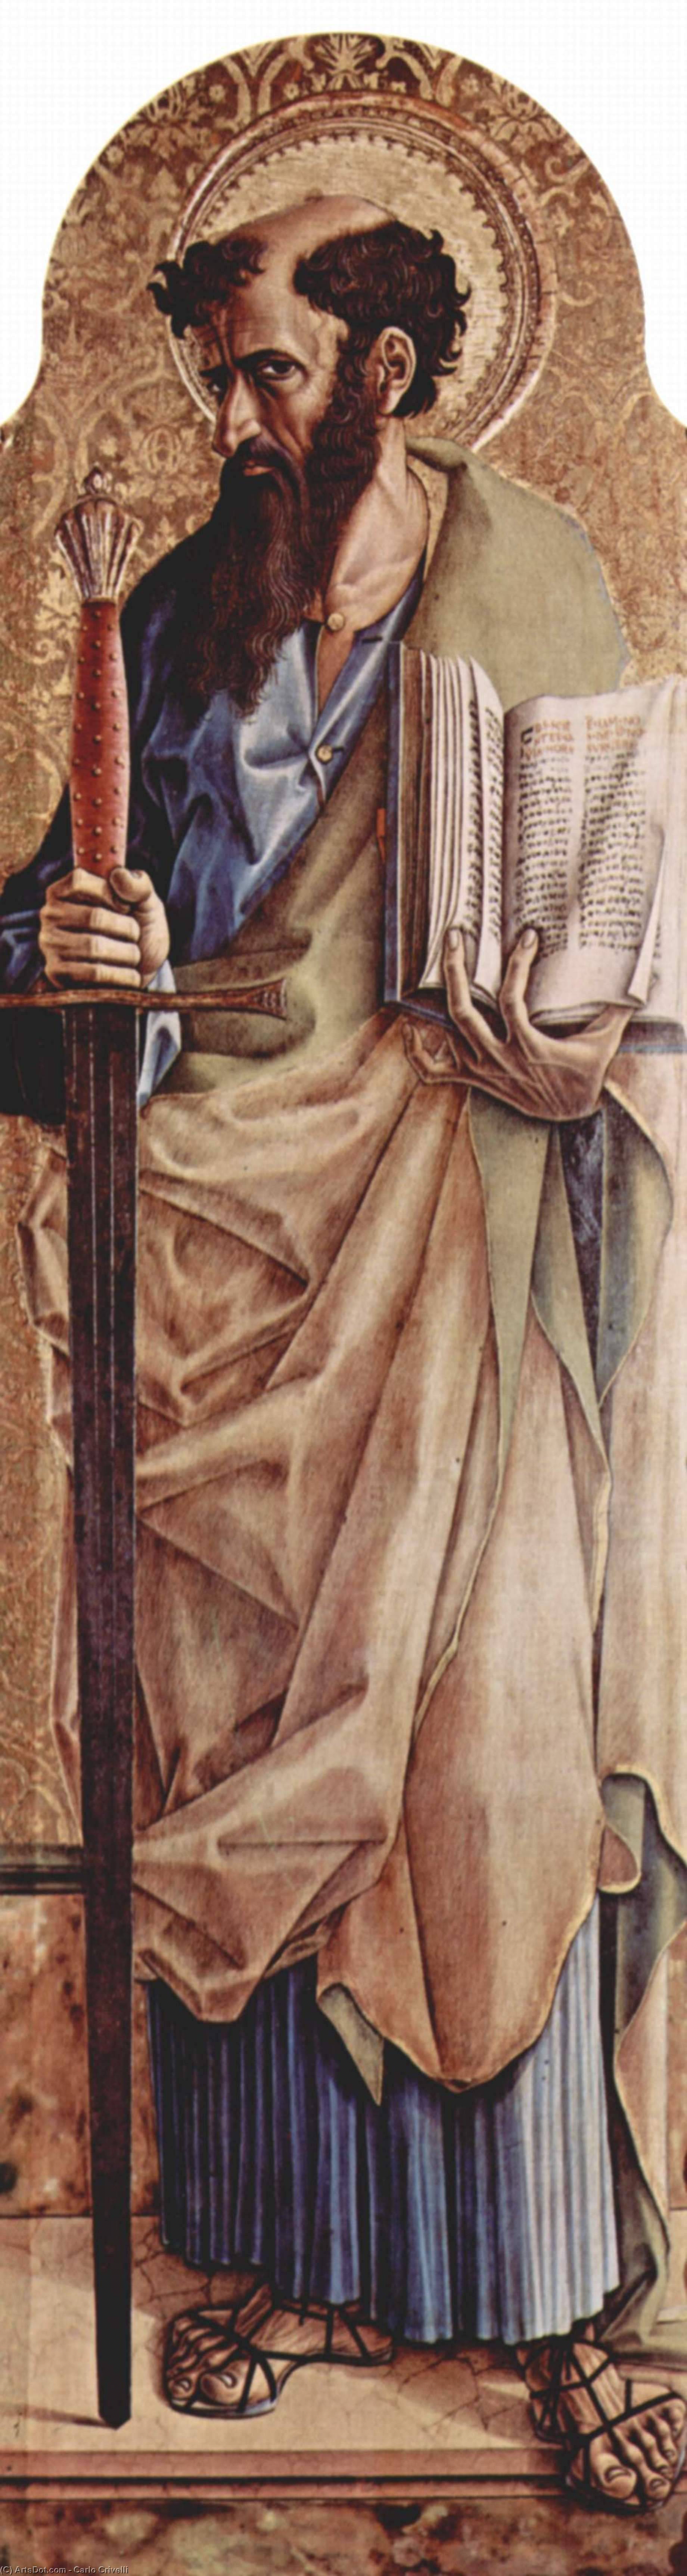 Wikioo.org - The Encyclopedia of Fine Arts - Painting, Artwork by Carlo Crivelli - Saint Paul